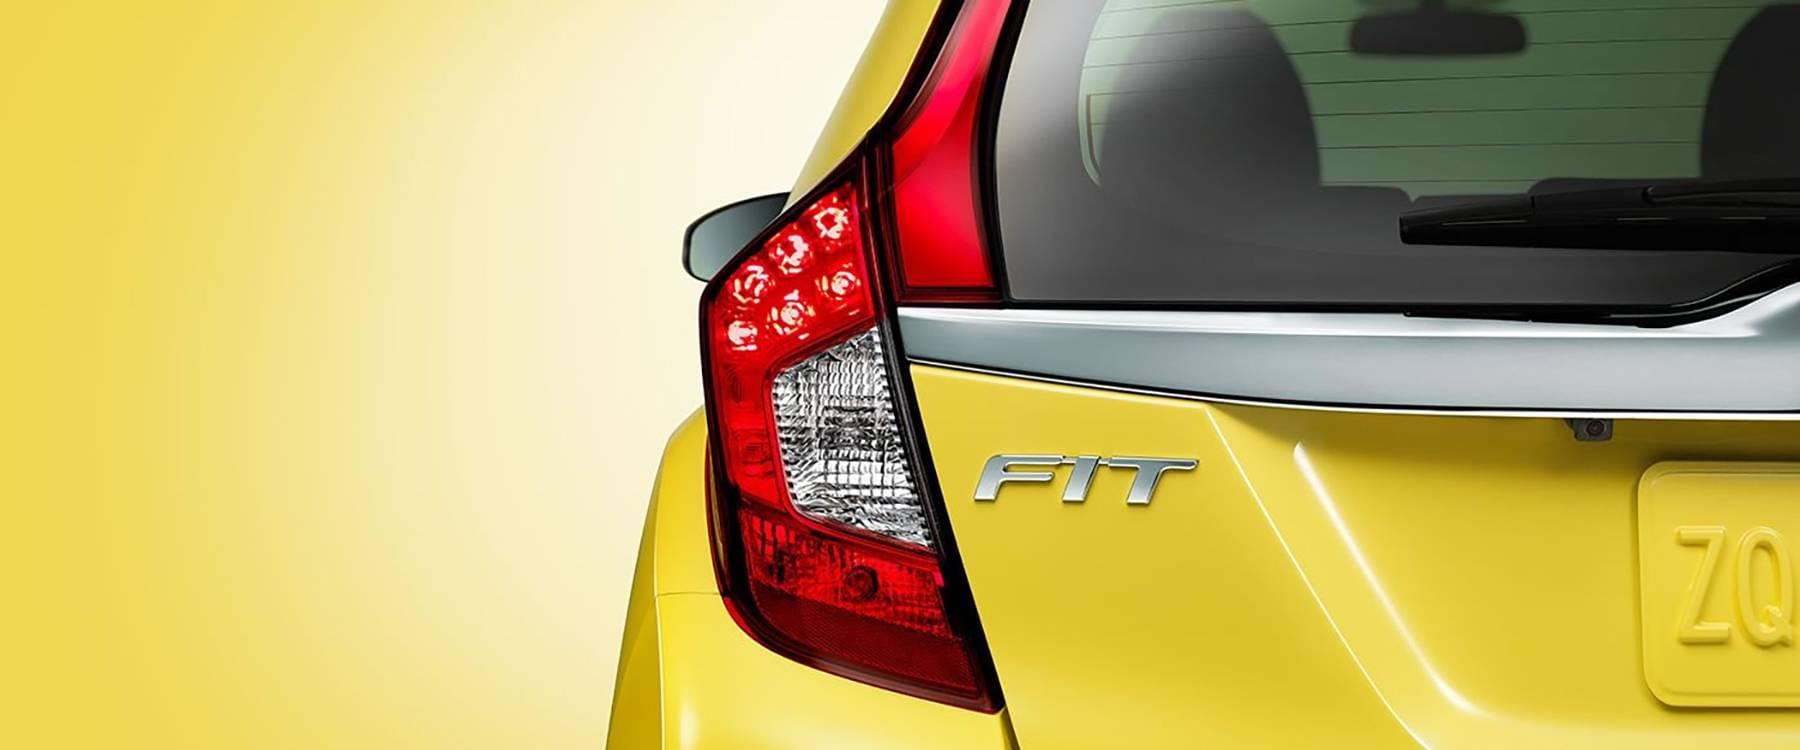 2017 Honda Fit Yellow